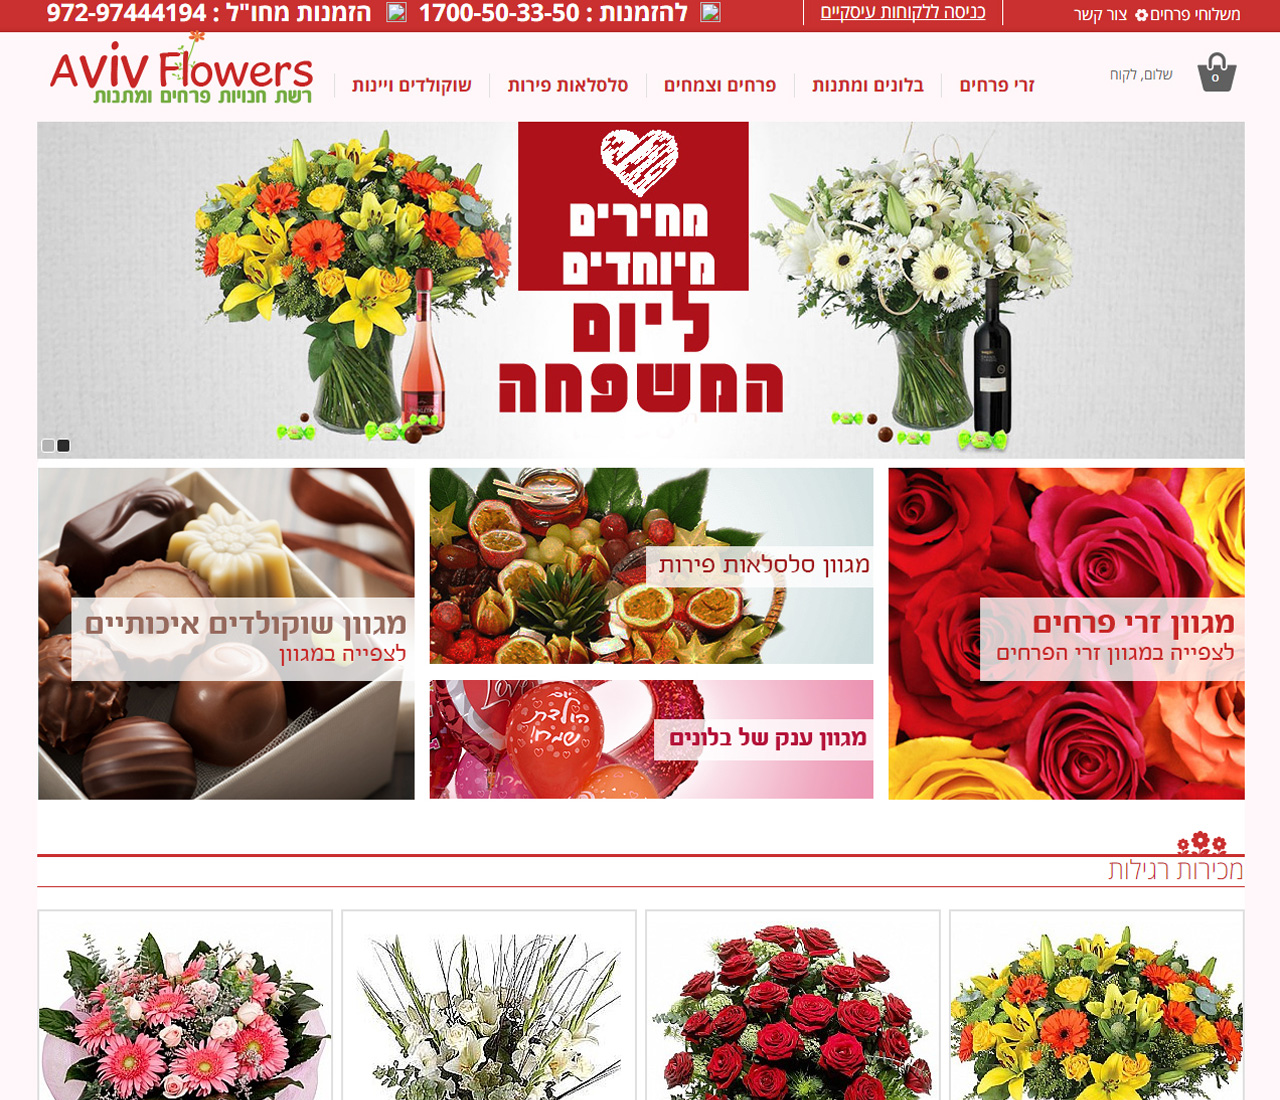 Avivflowers